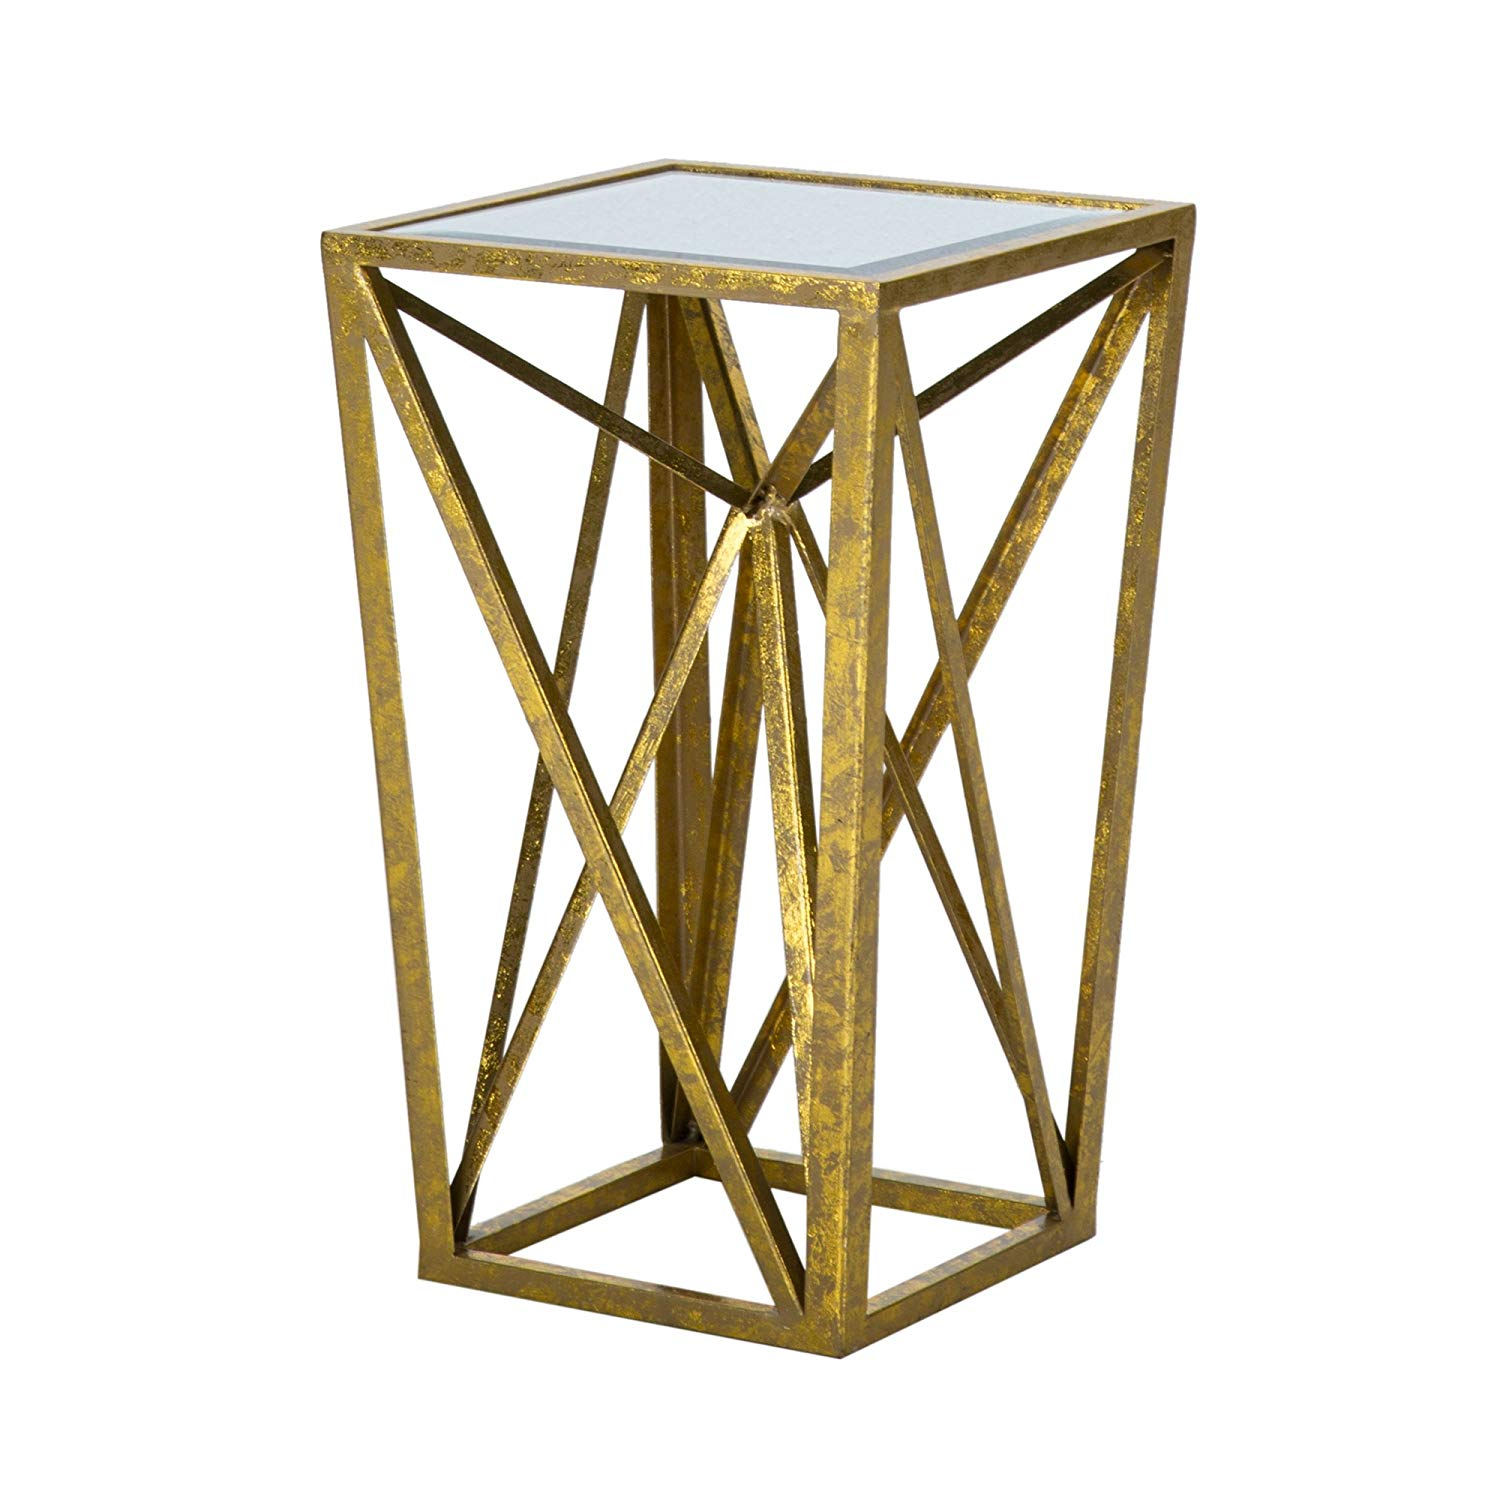 madison park zee accent tables mirror glass metal end side table gold angular design modern style piece top hollow round knotty pine dining set brass leg coffee mirrored bedside